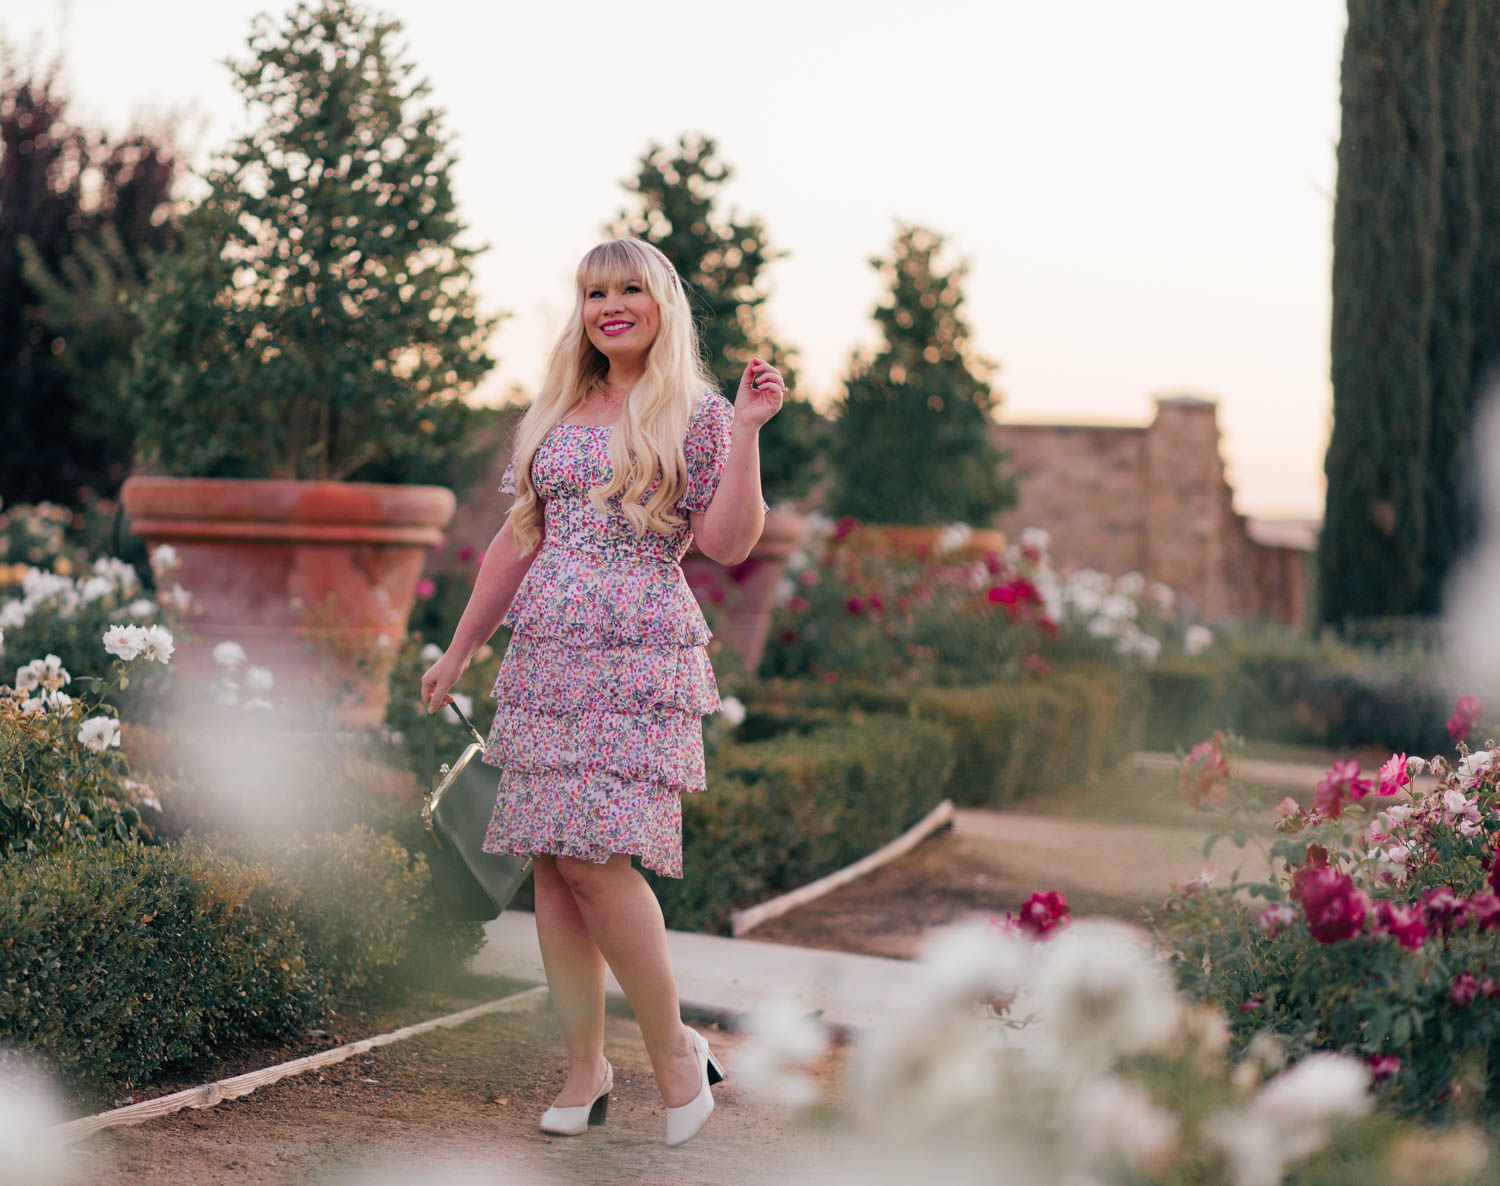 Transitioning to Fall with a Girly Colorful Floral Dress